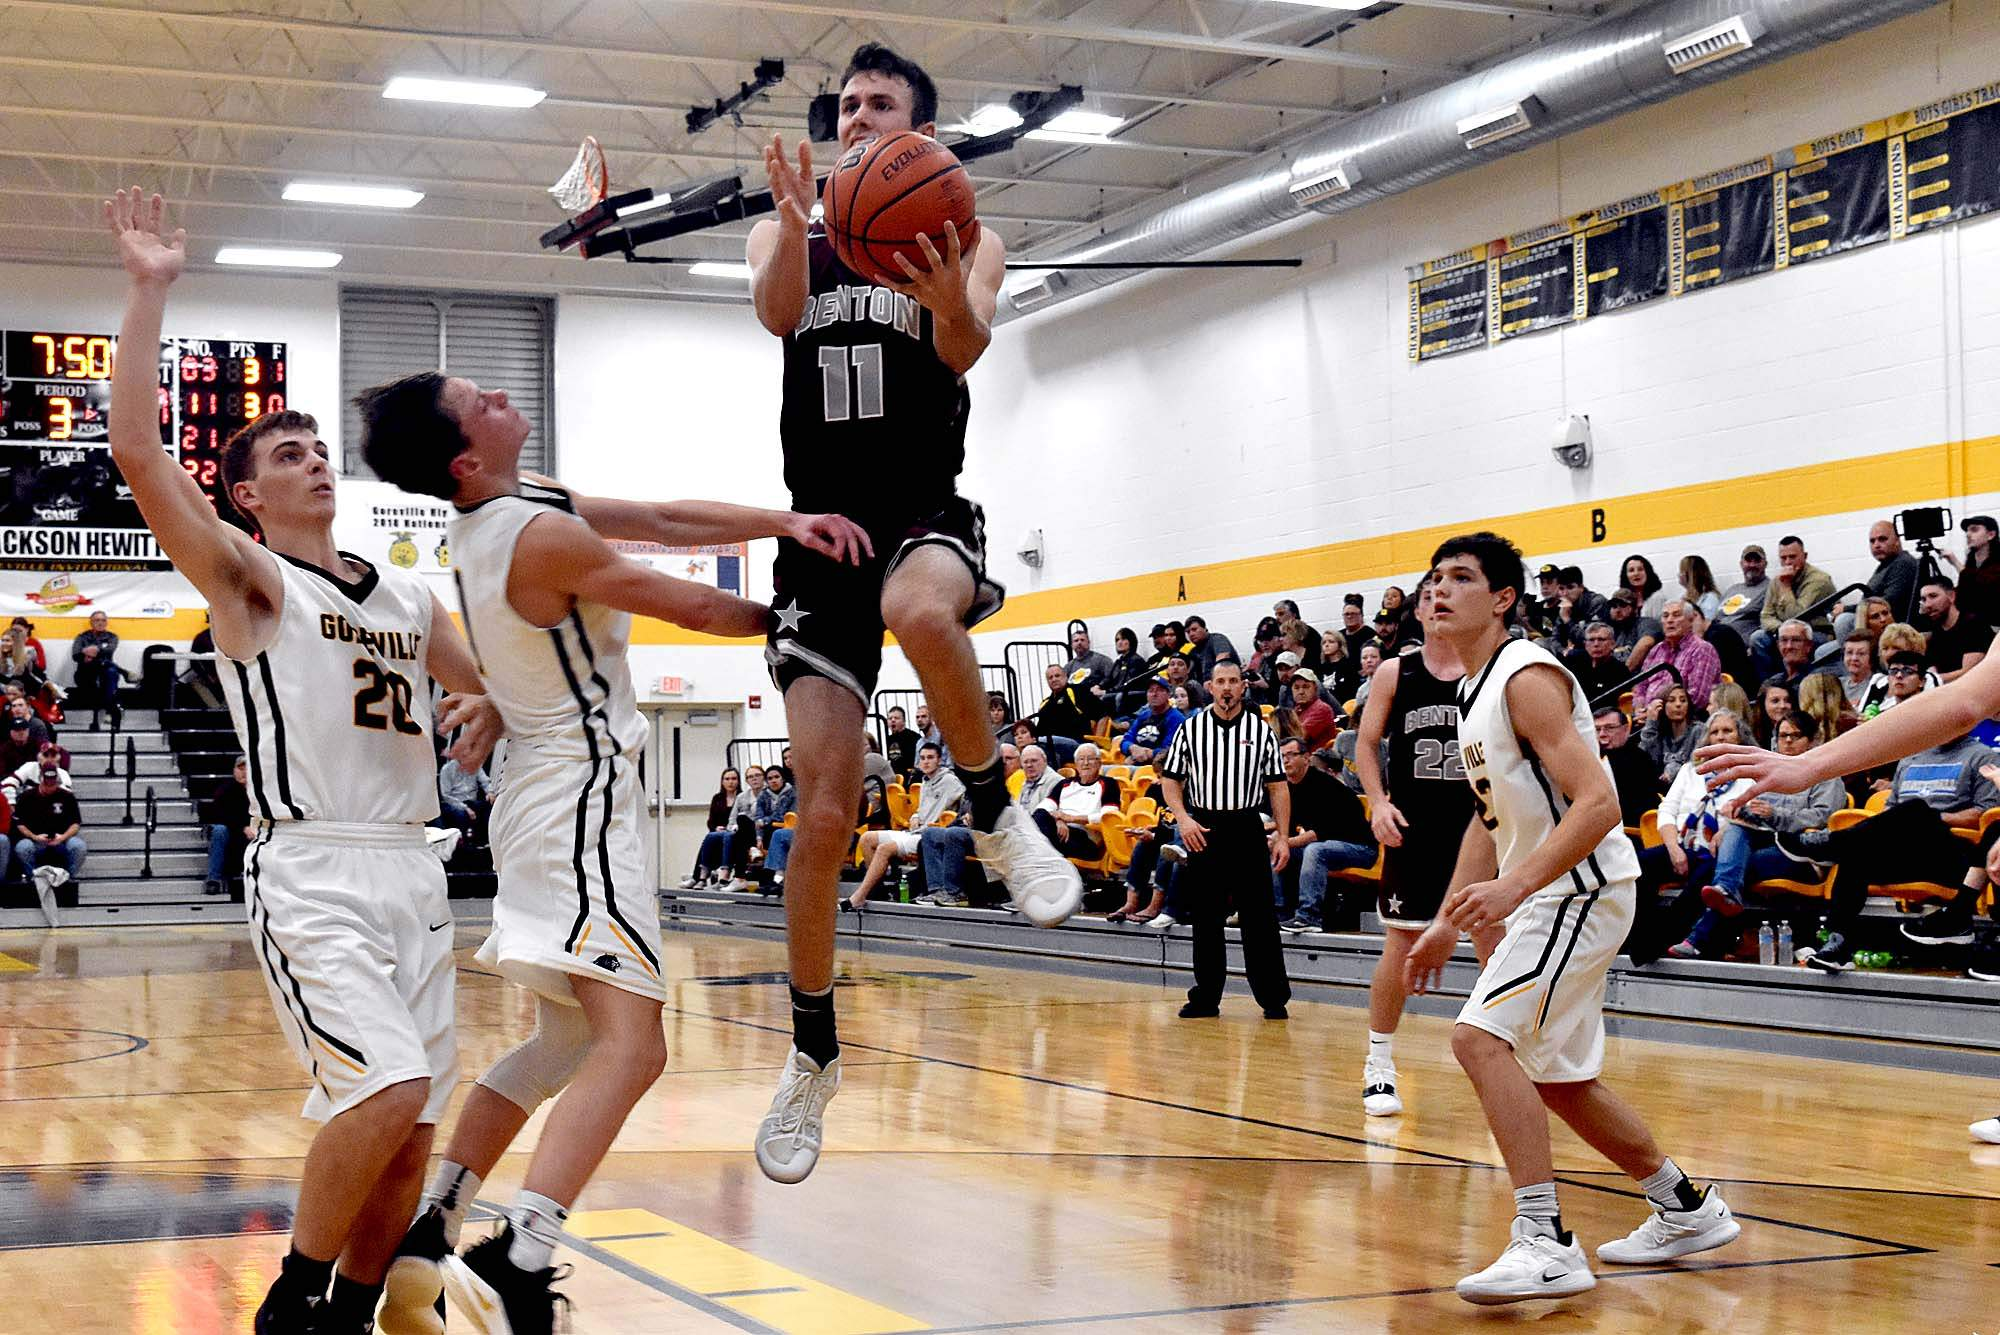 Carson Lewis, MVP of the Goreville Invitational Tournament, goes up for a shot during the Rangers' game against Goreville on Saturday night. Lewis, Brad Hammond and Joey Craig were all named to the all-tournament team as the Rangers won/shared the title for the fourth straight year.